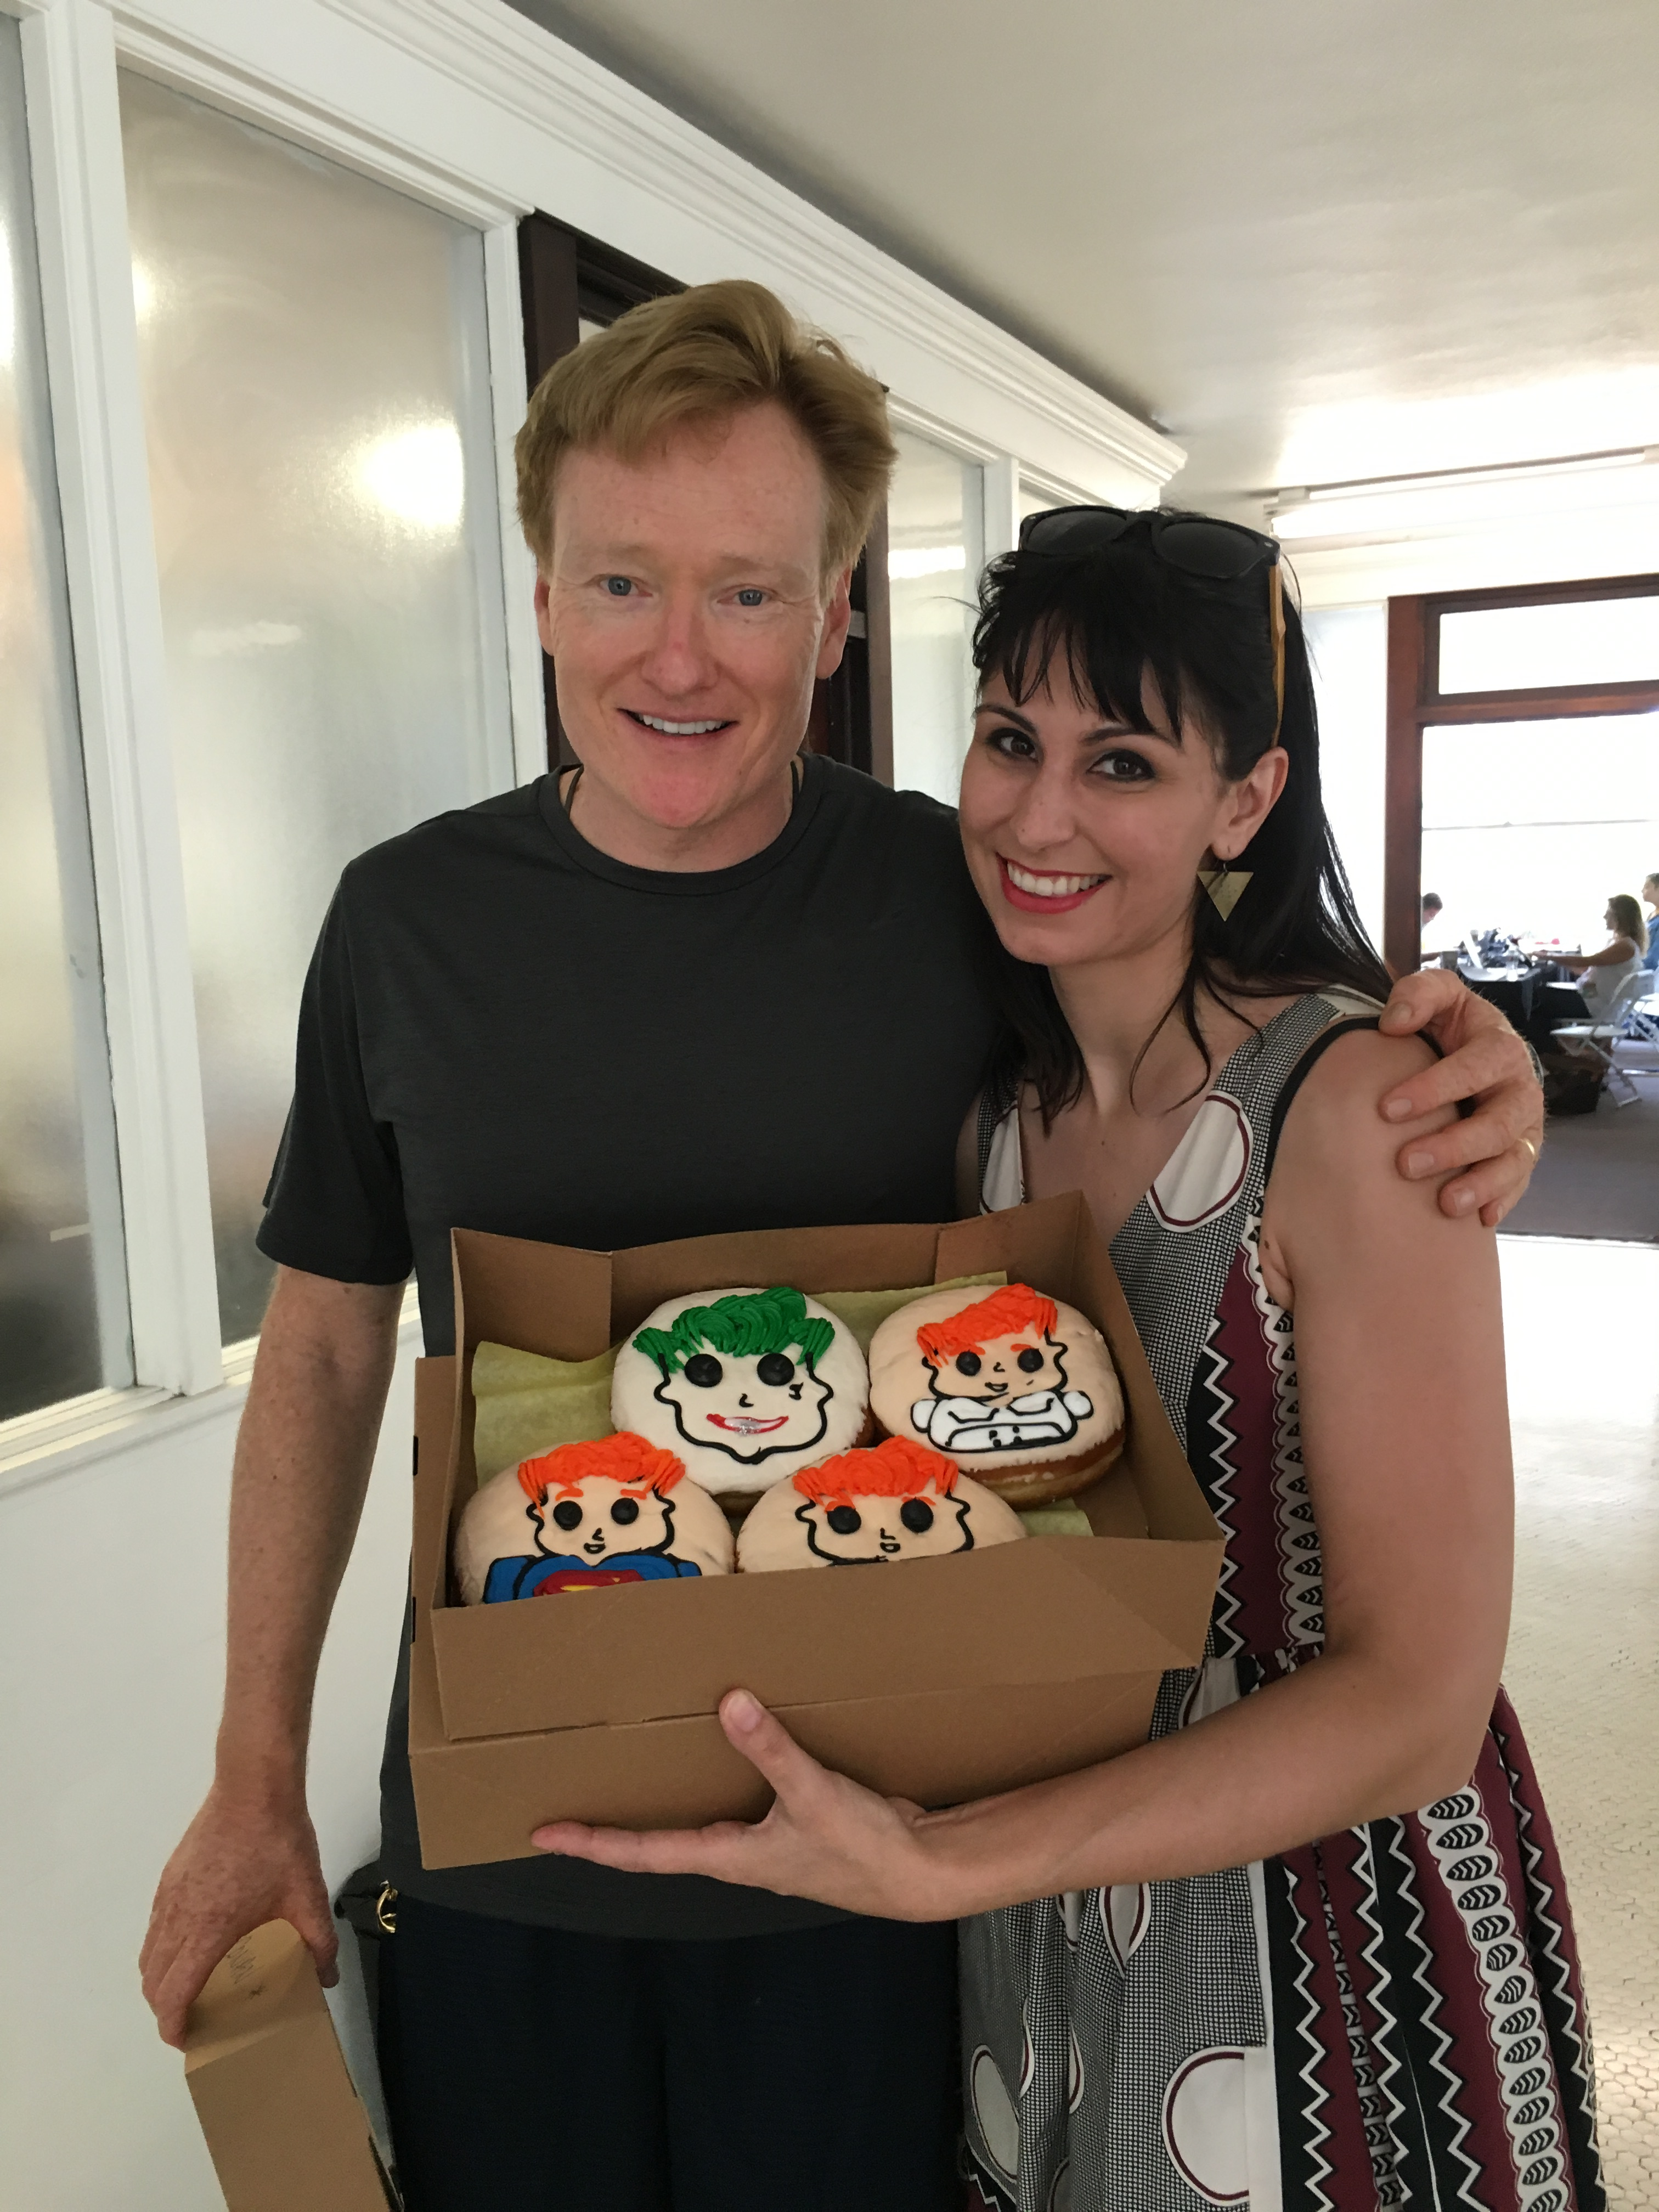 Conan O'Brien enjoys San Diego